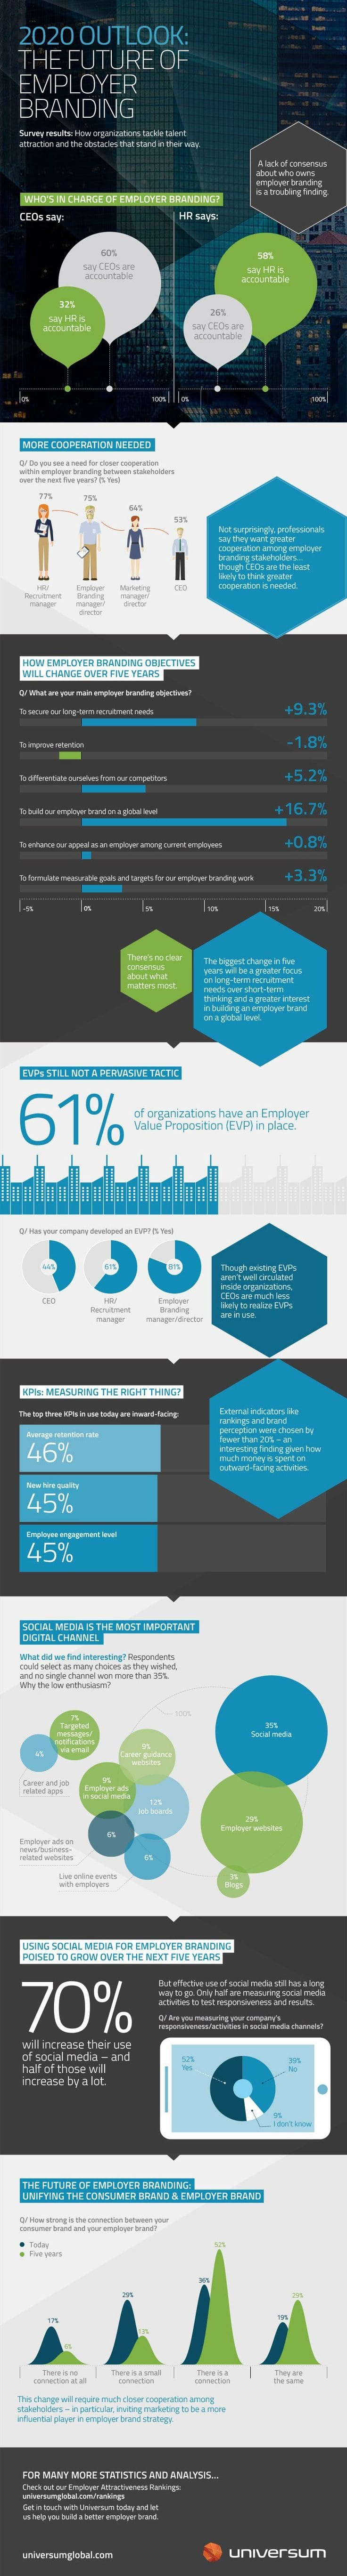 what does the future hold for employer brand